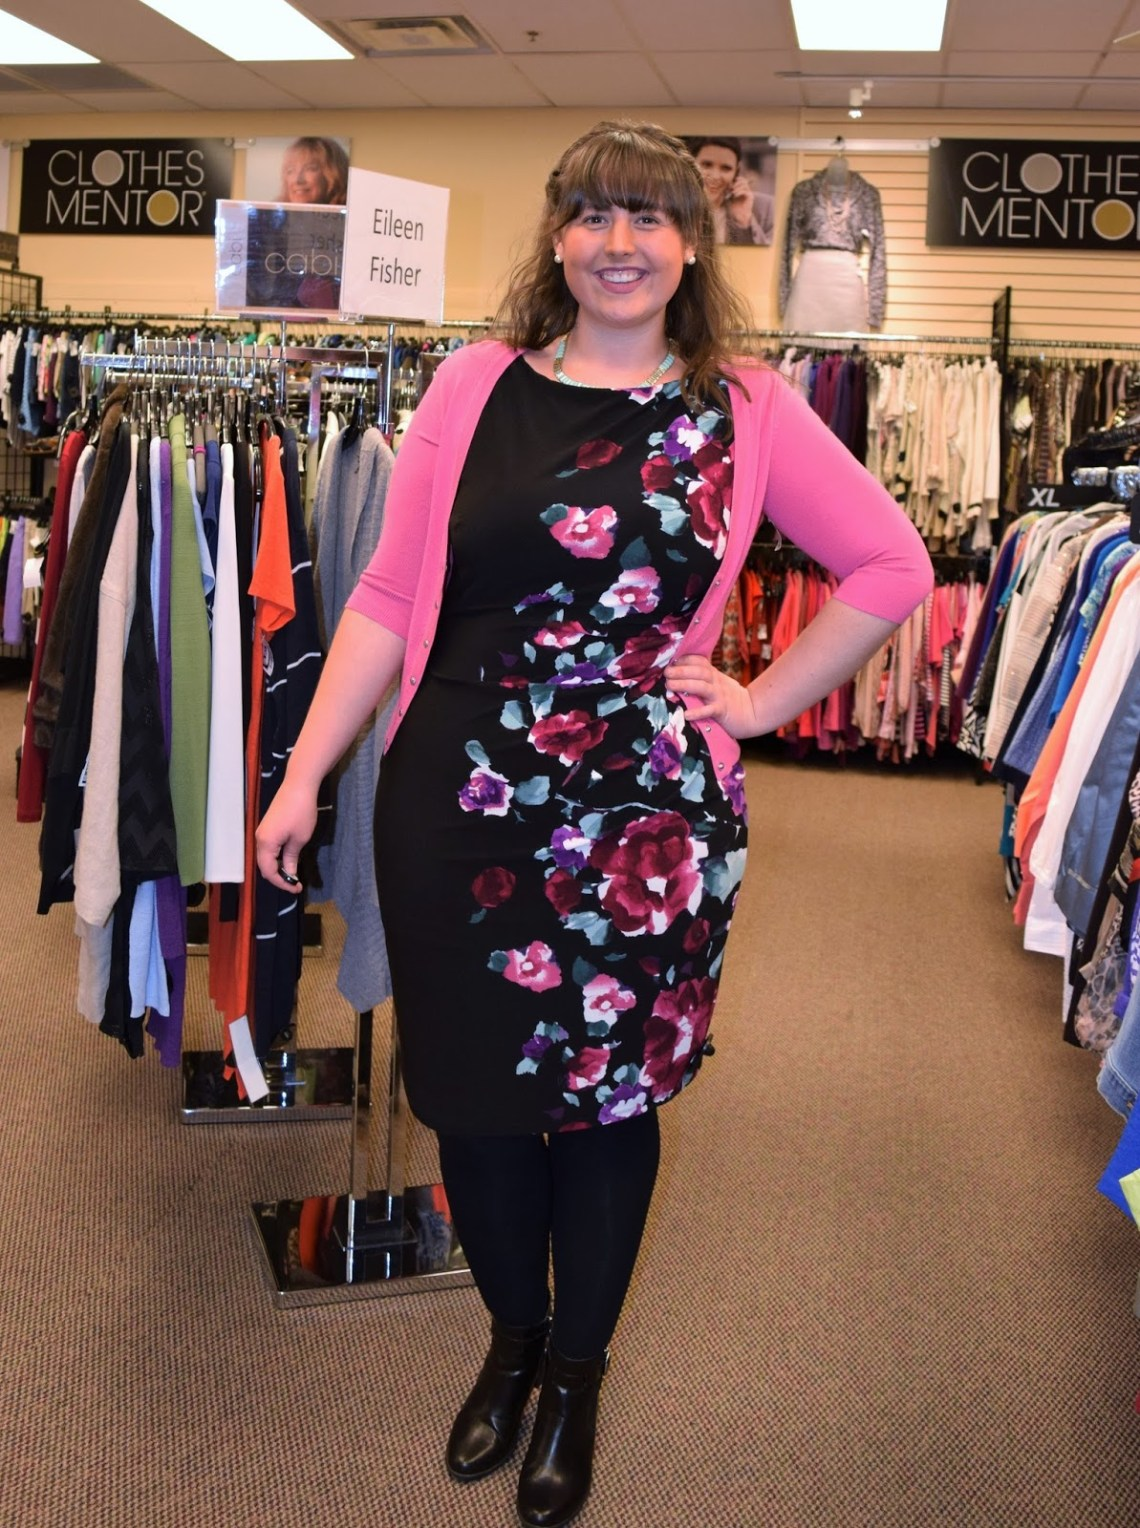 How to Dress Over 50 and Overweight 2021 - Plus Size Women ...